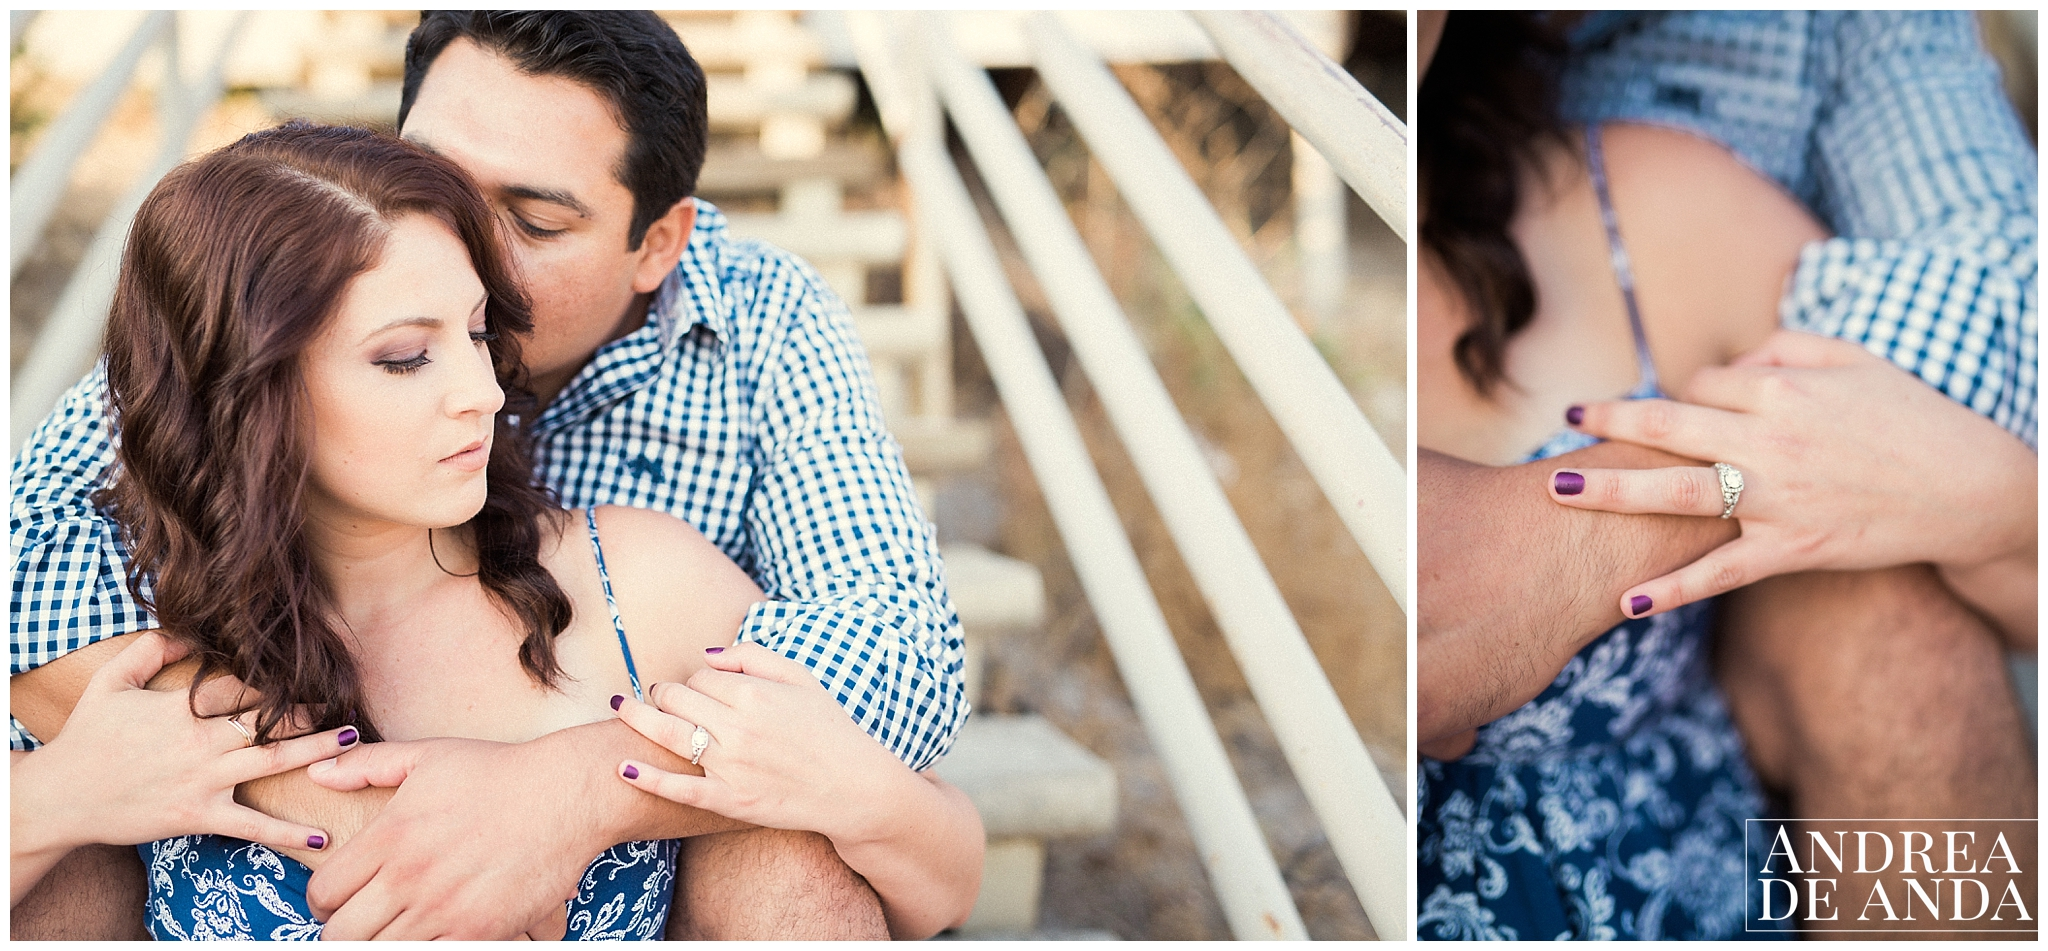 Pismo Beach engagement photography_Andrea de Anda Photography__0007.jpg